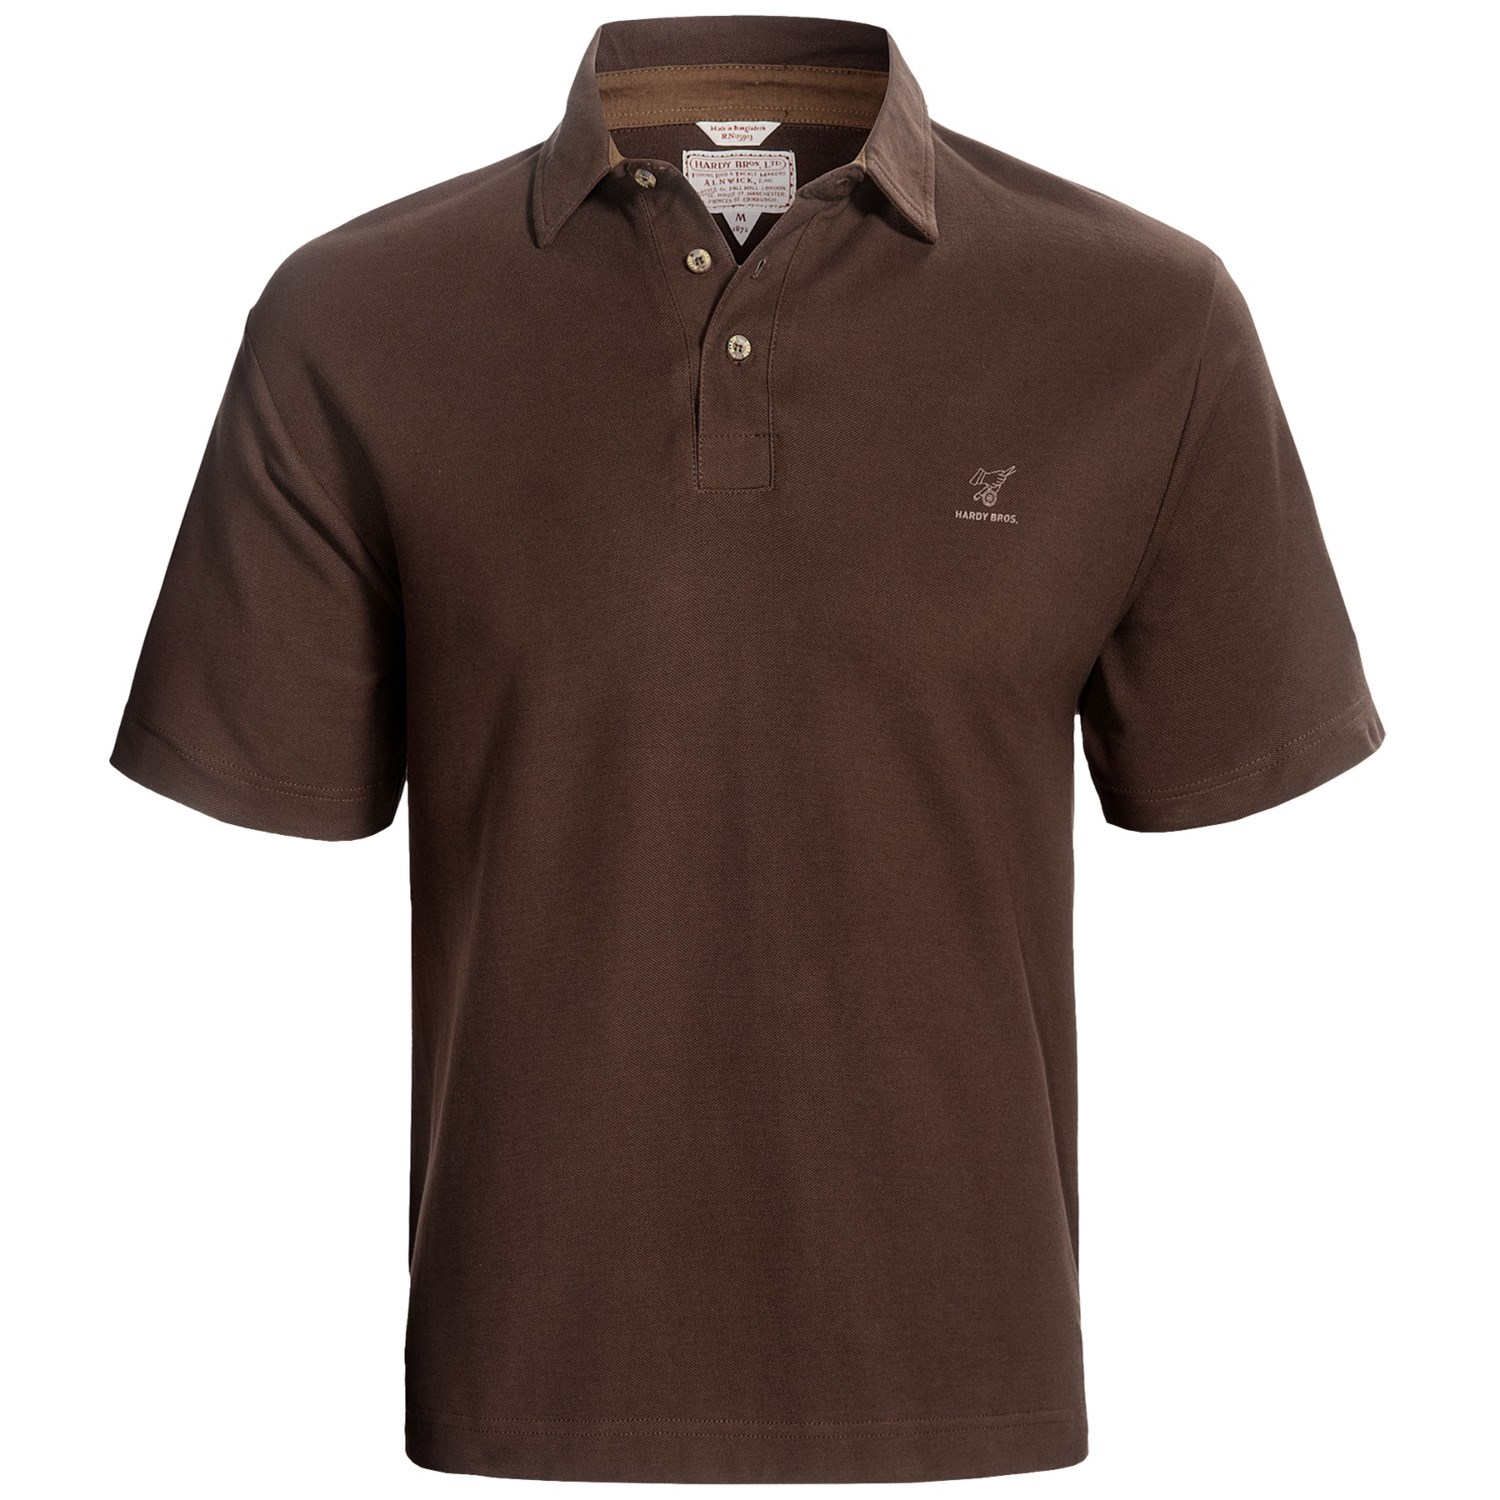 Brown polo shirts for men male models picture Man in polo shirt